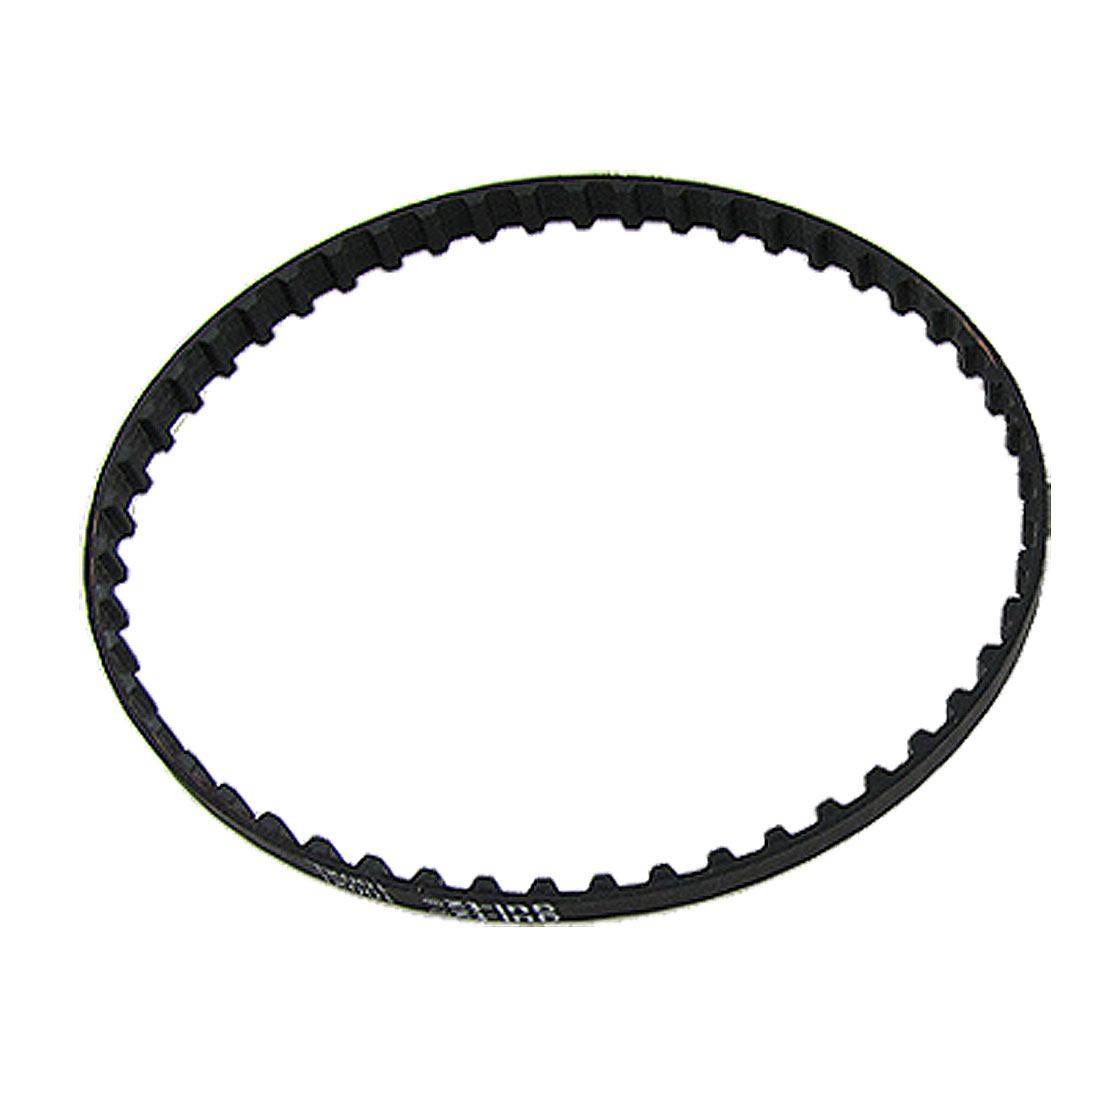 100XL 50 Teeth 6mm Width Black Rubber PU Synchronous Timing Belt